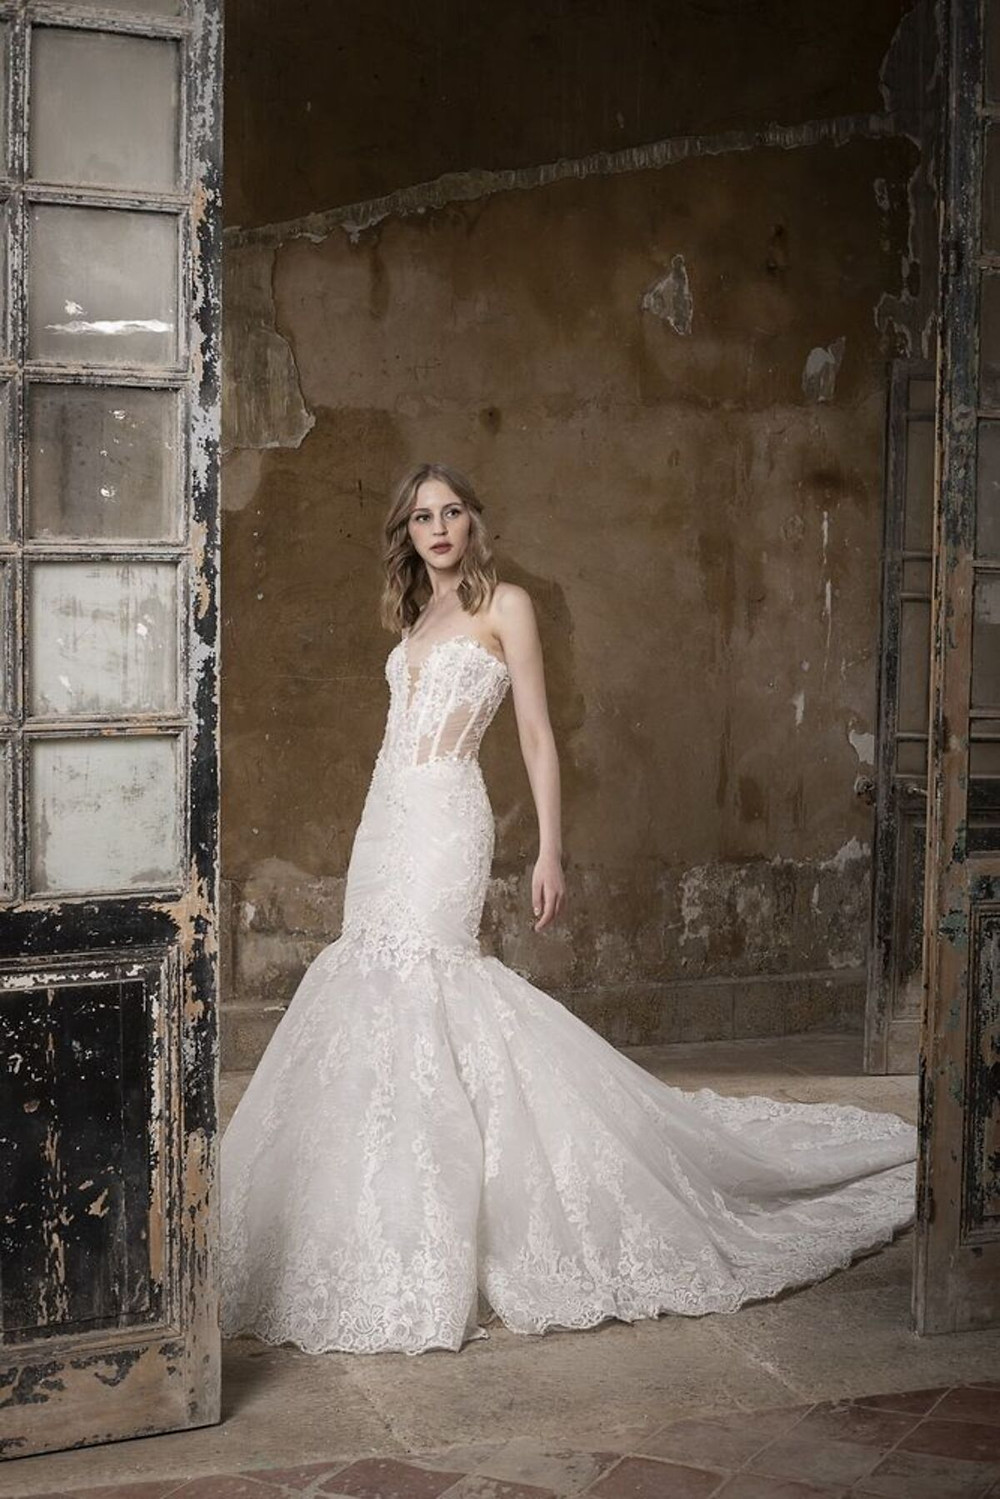 A mermaid wedding dress with a corset bodice made of tulle and french lace, featuring a statement train